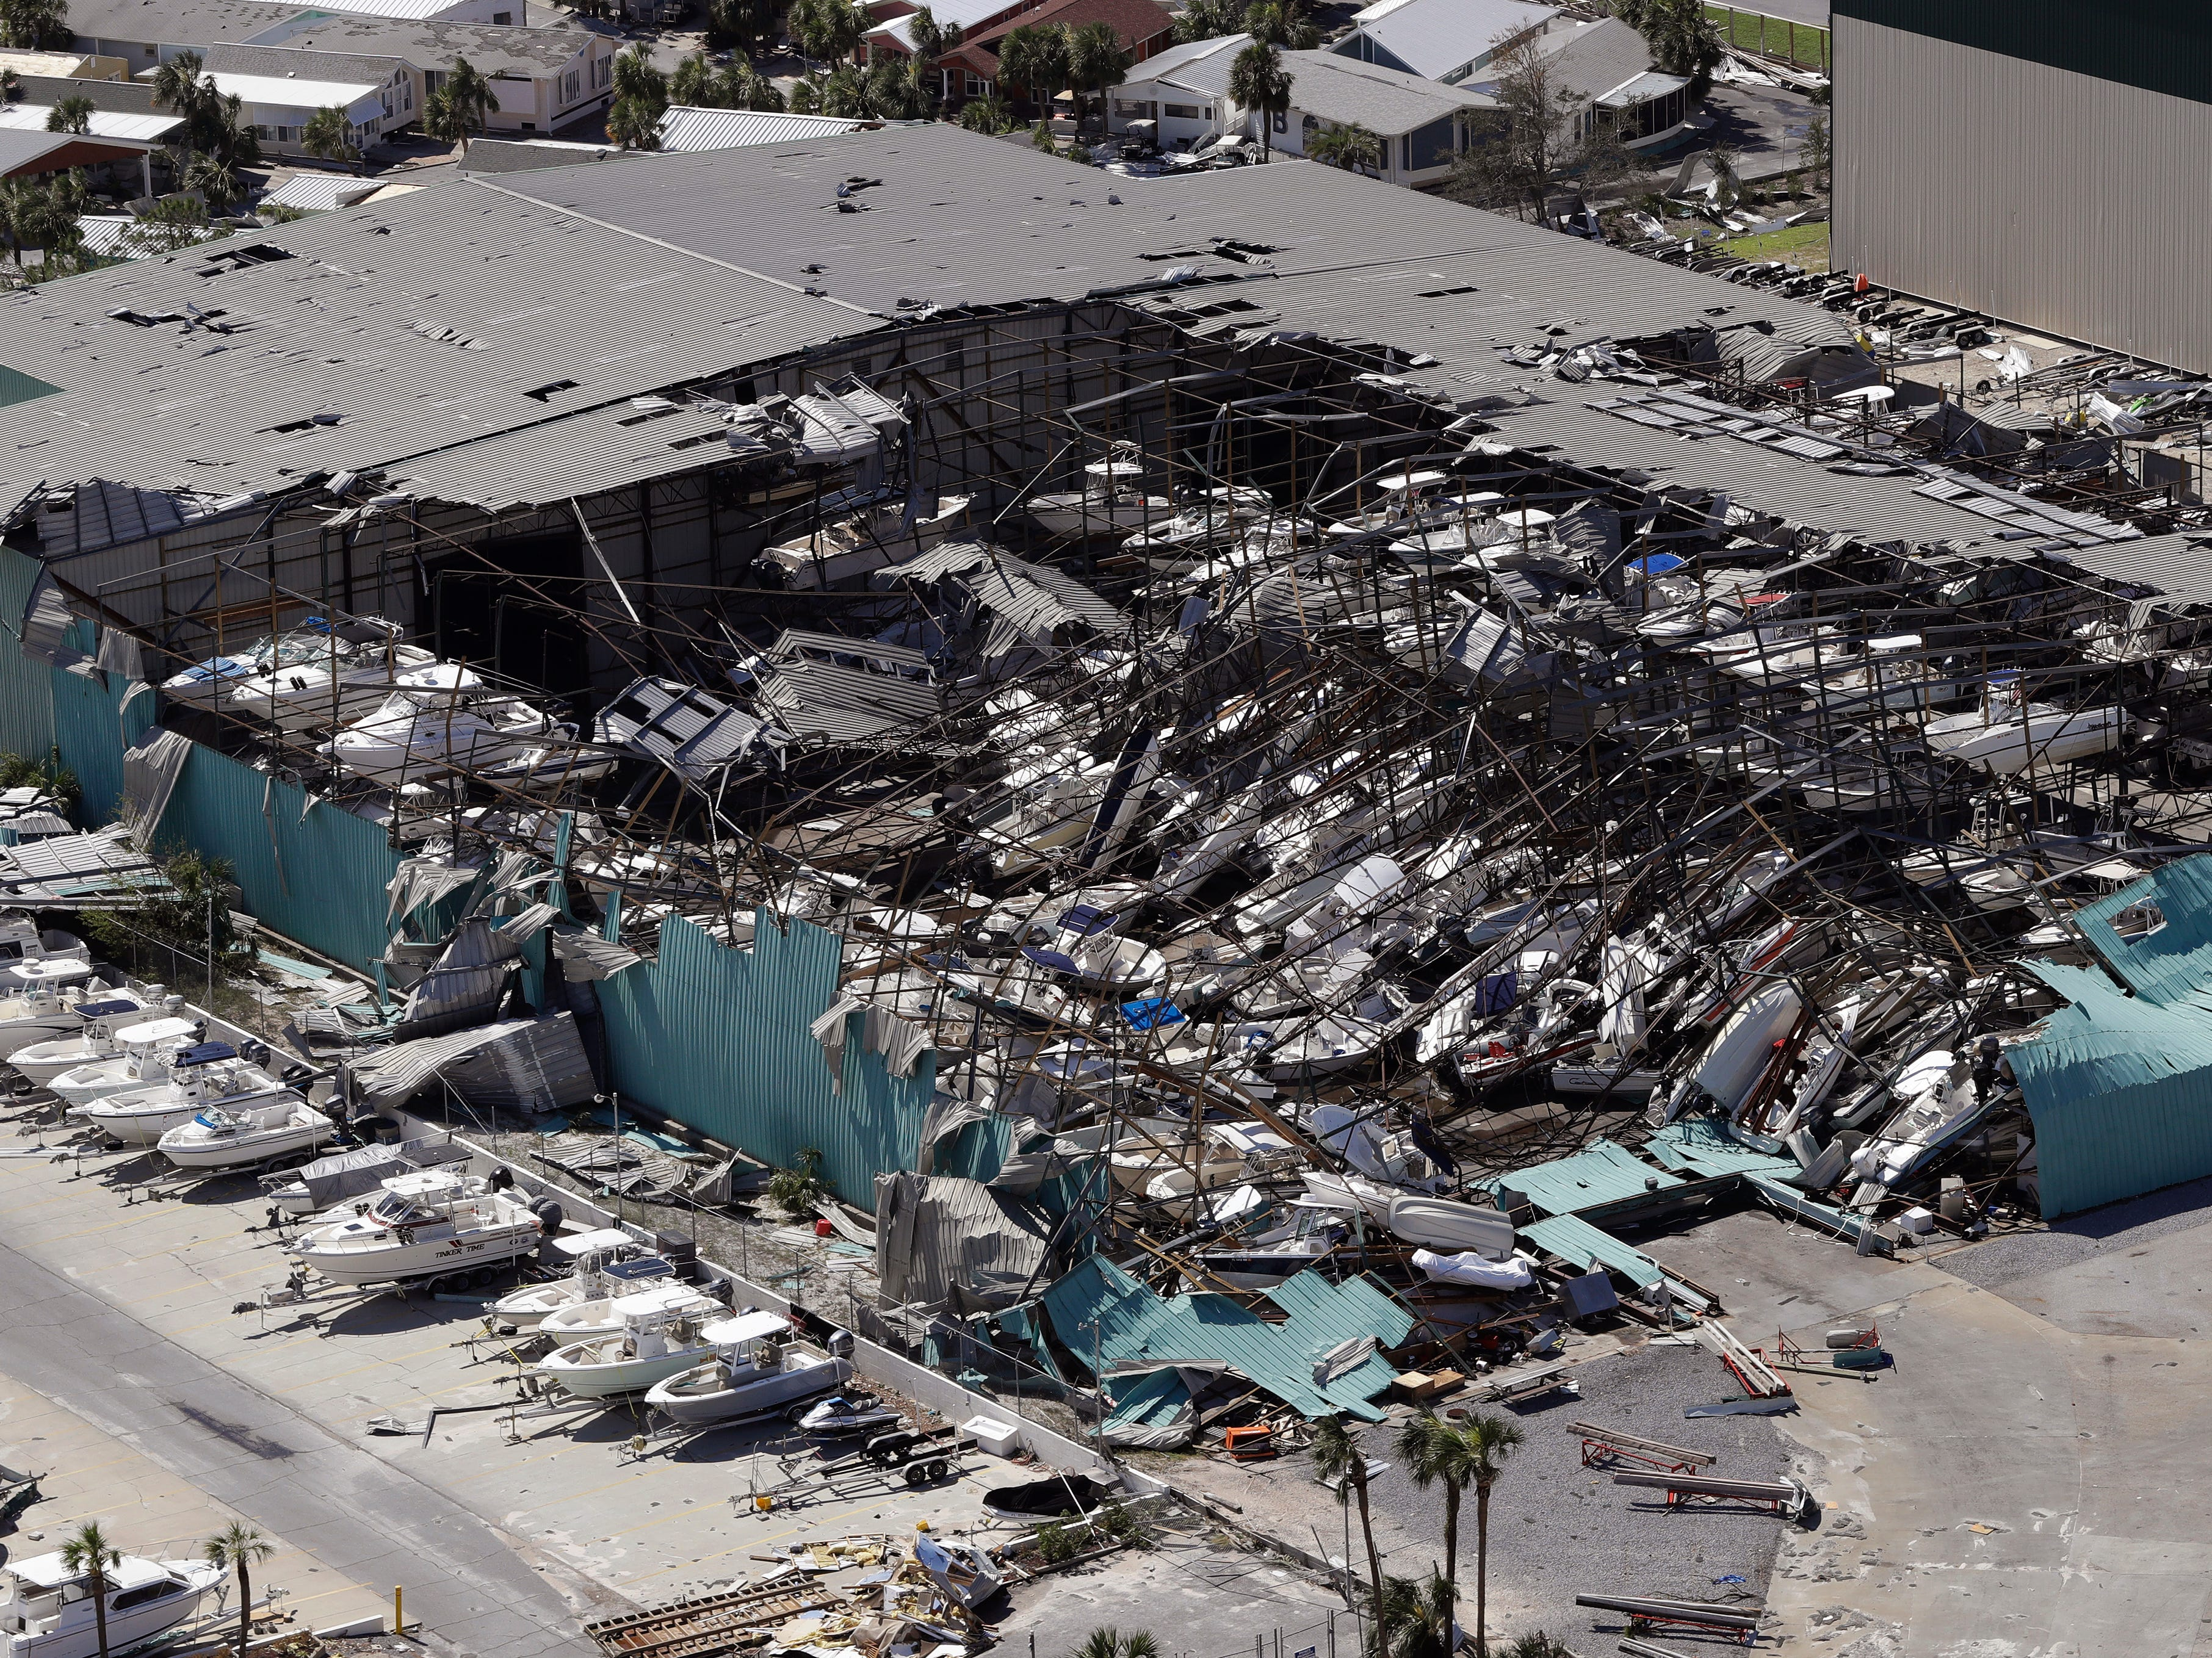 A roof over a boat storage building is collapsed following Hurricane Michael Thursday, Oct. 11, 2018, in Panama City Beach, Fla. Hurricane Michael made landfall Wednesday as a Category 4 hurricane with 155 mph (250 kph) winds and a storm surge of 9 feet (2.7 meters). (AP Photo/Chris O'Meara)